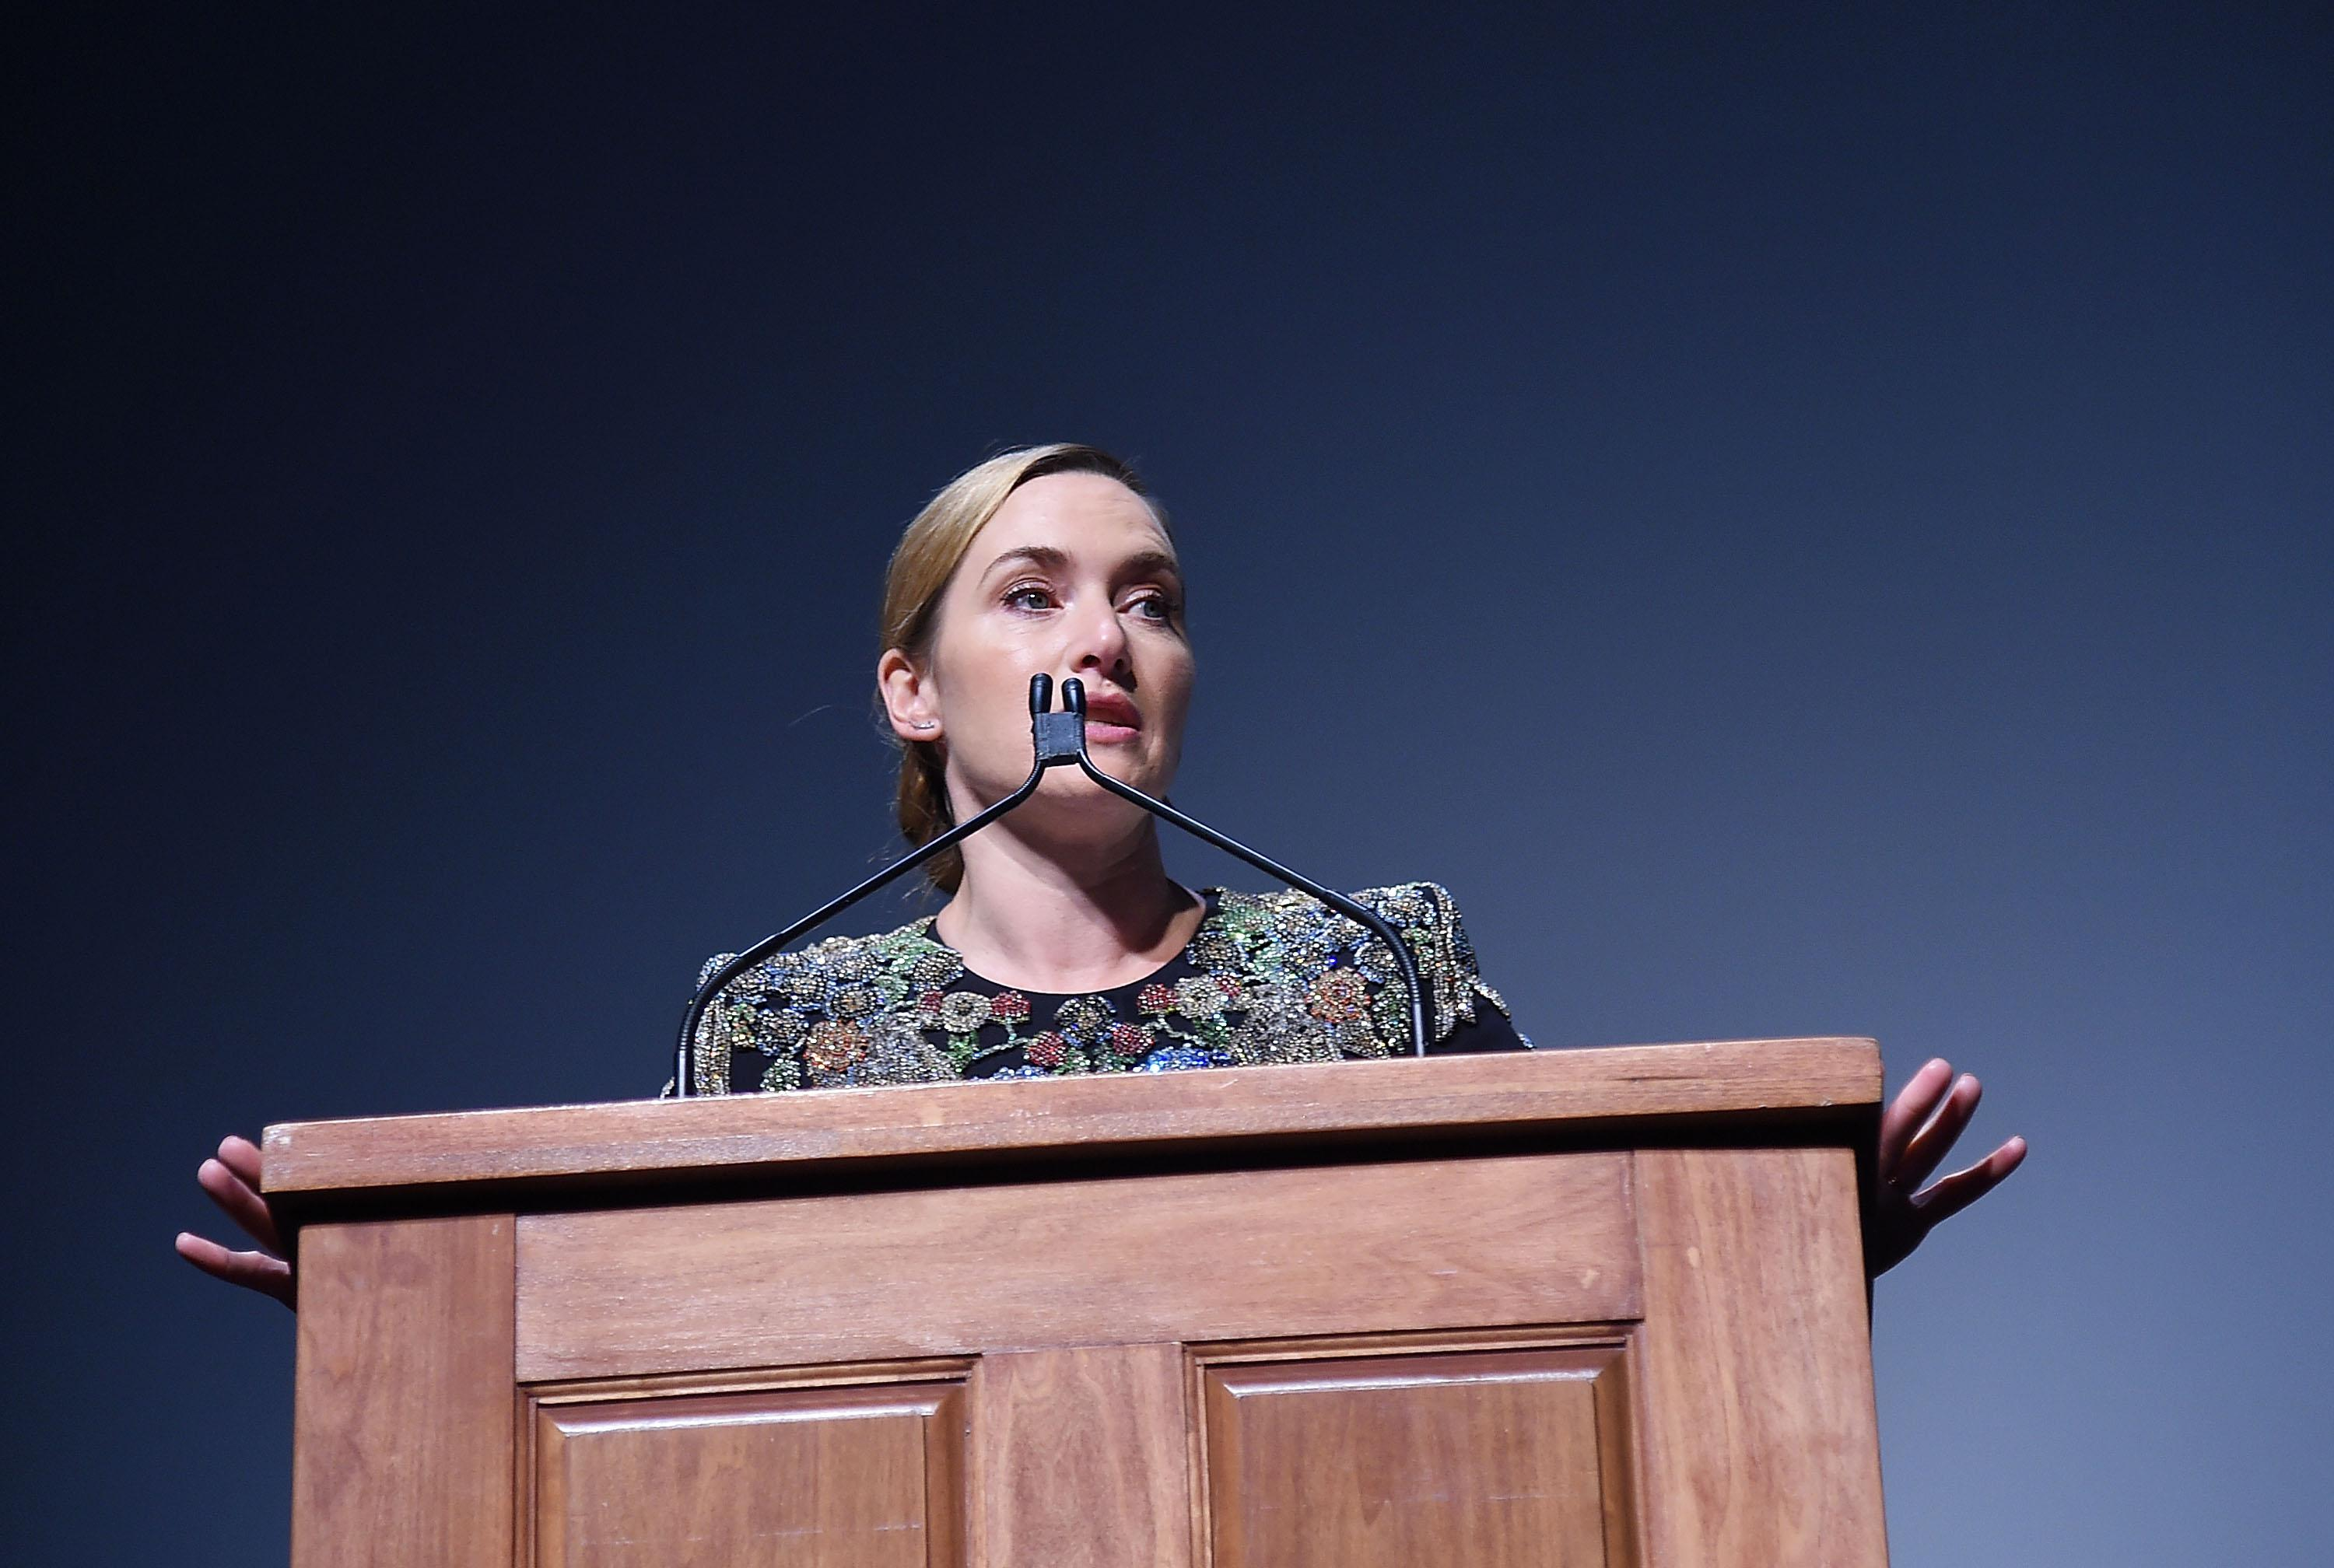 Kate Winslet stands at a podium